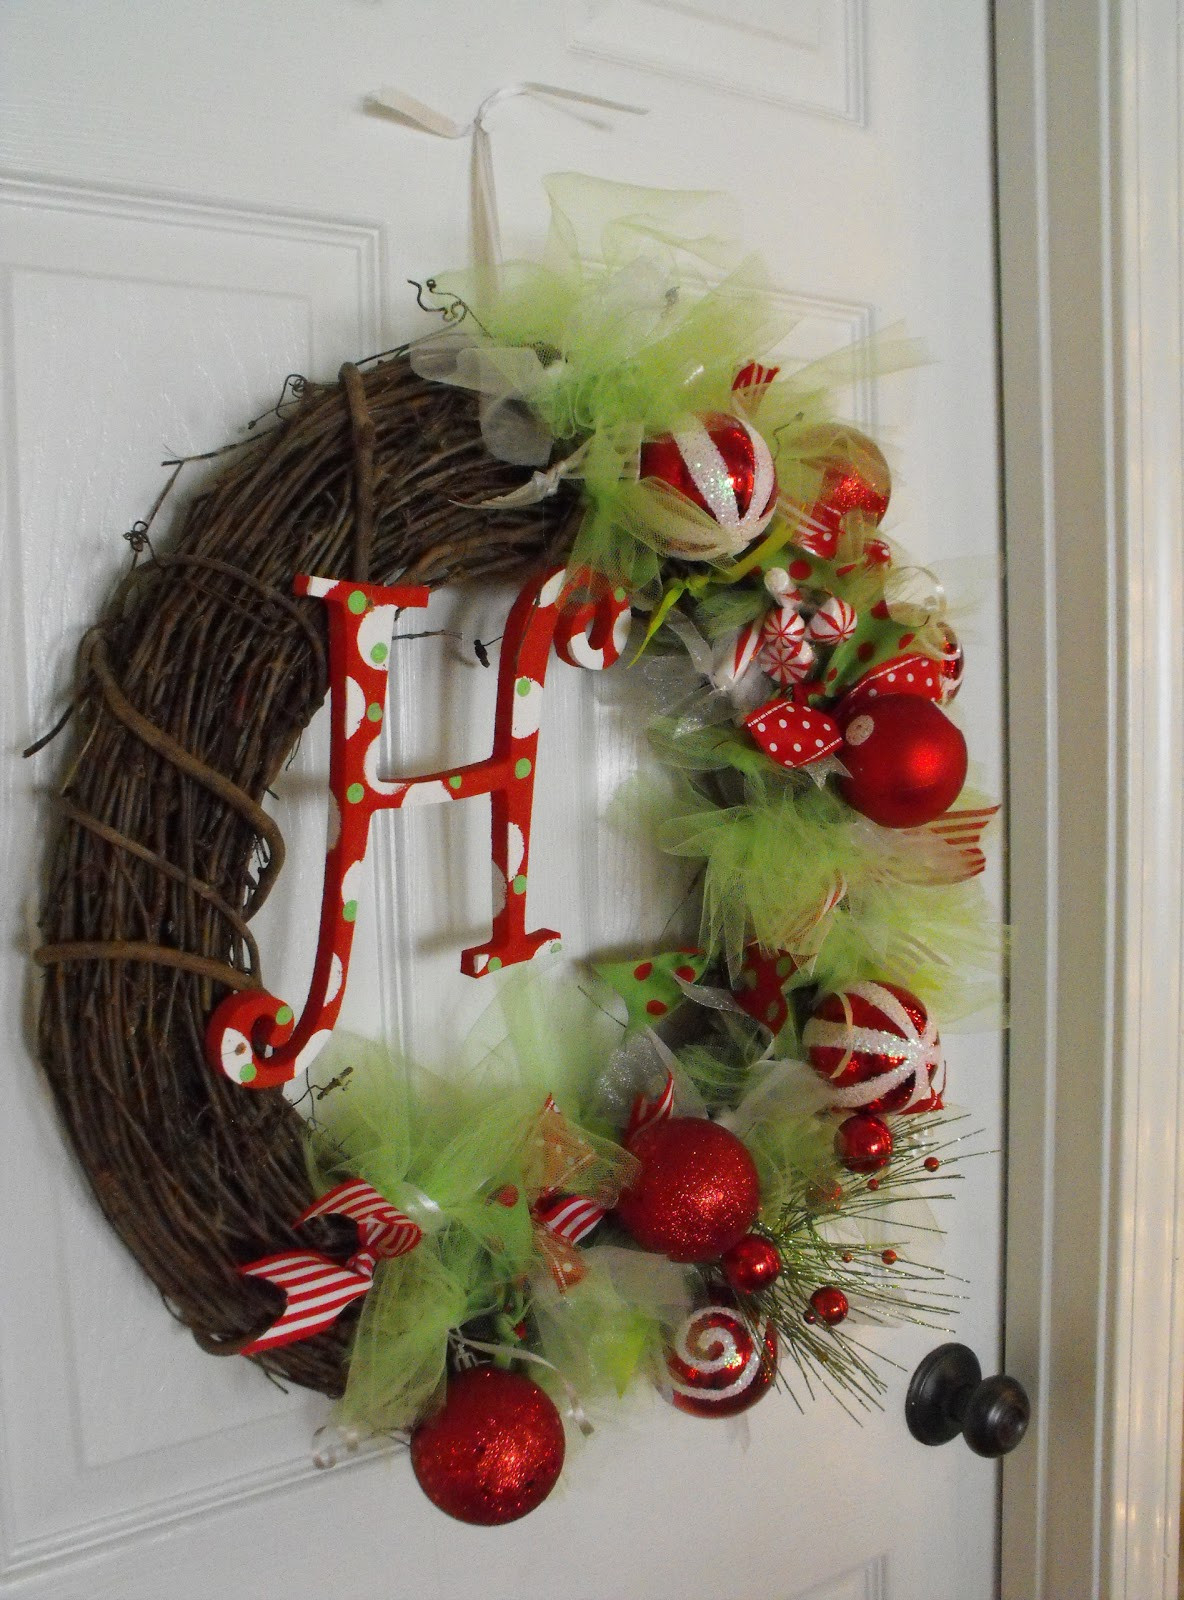 Best ideas about Easy DIY Christmas Wreaths . Save or Pin Susie Harris DIY Christmas Wreath Now.